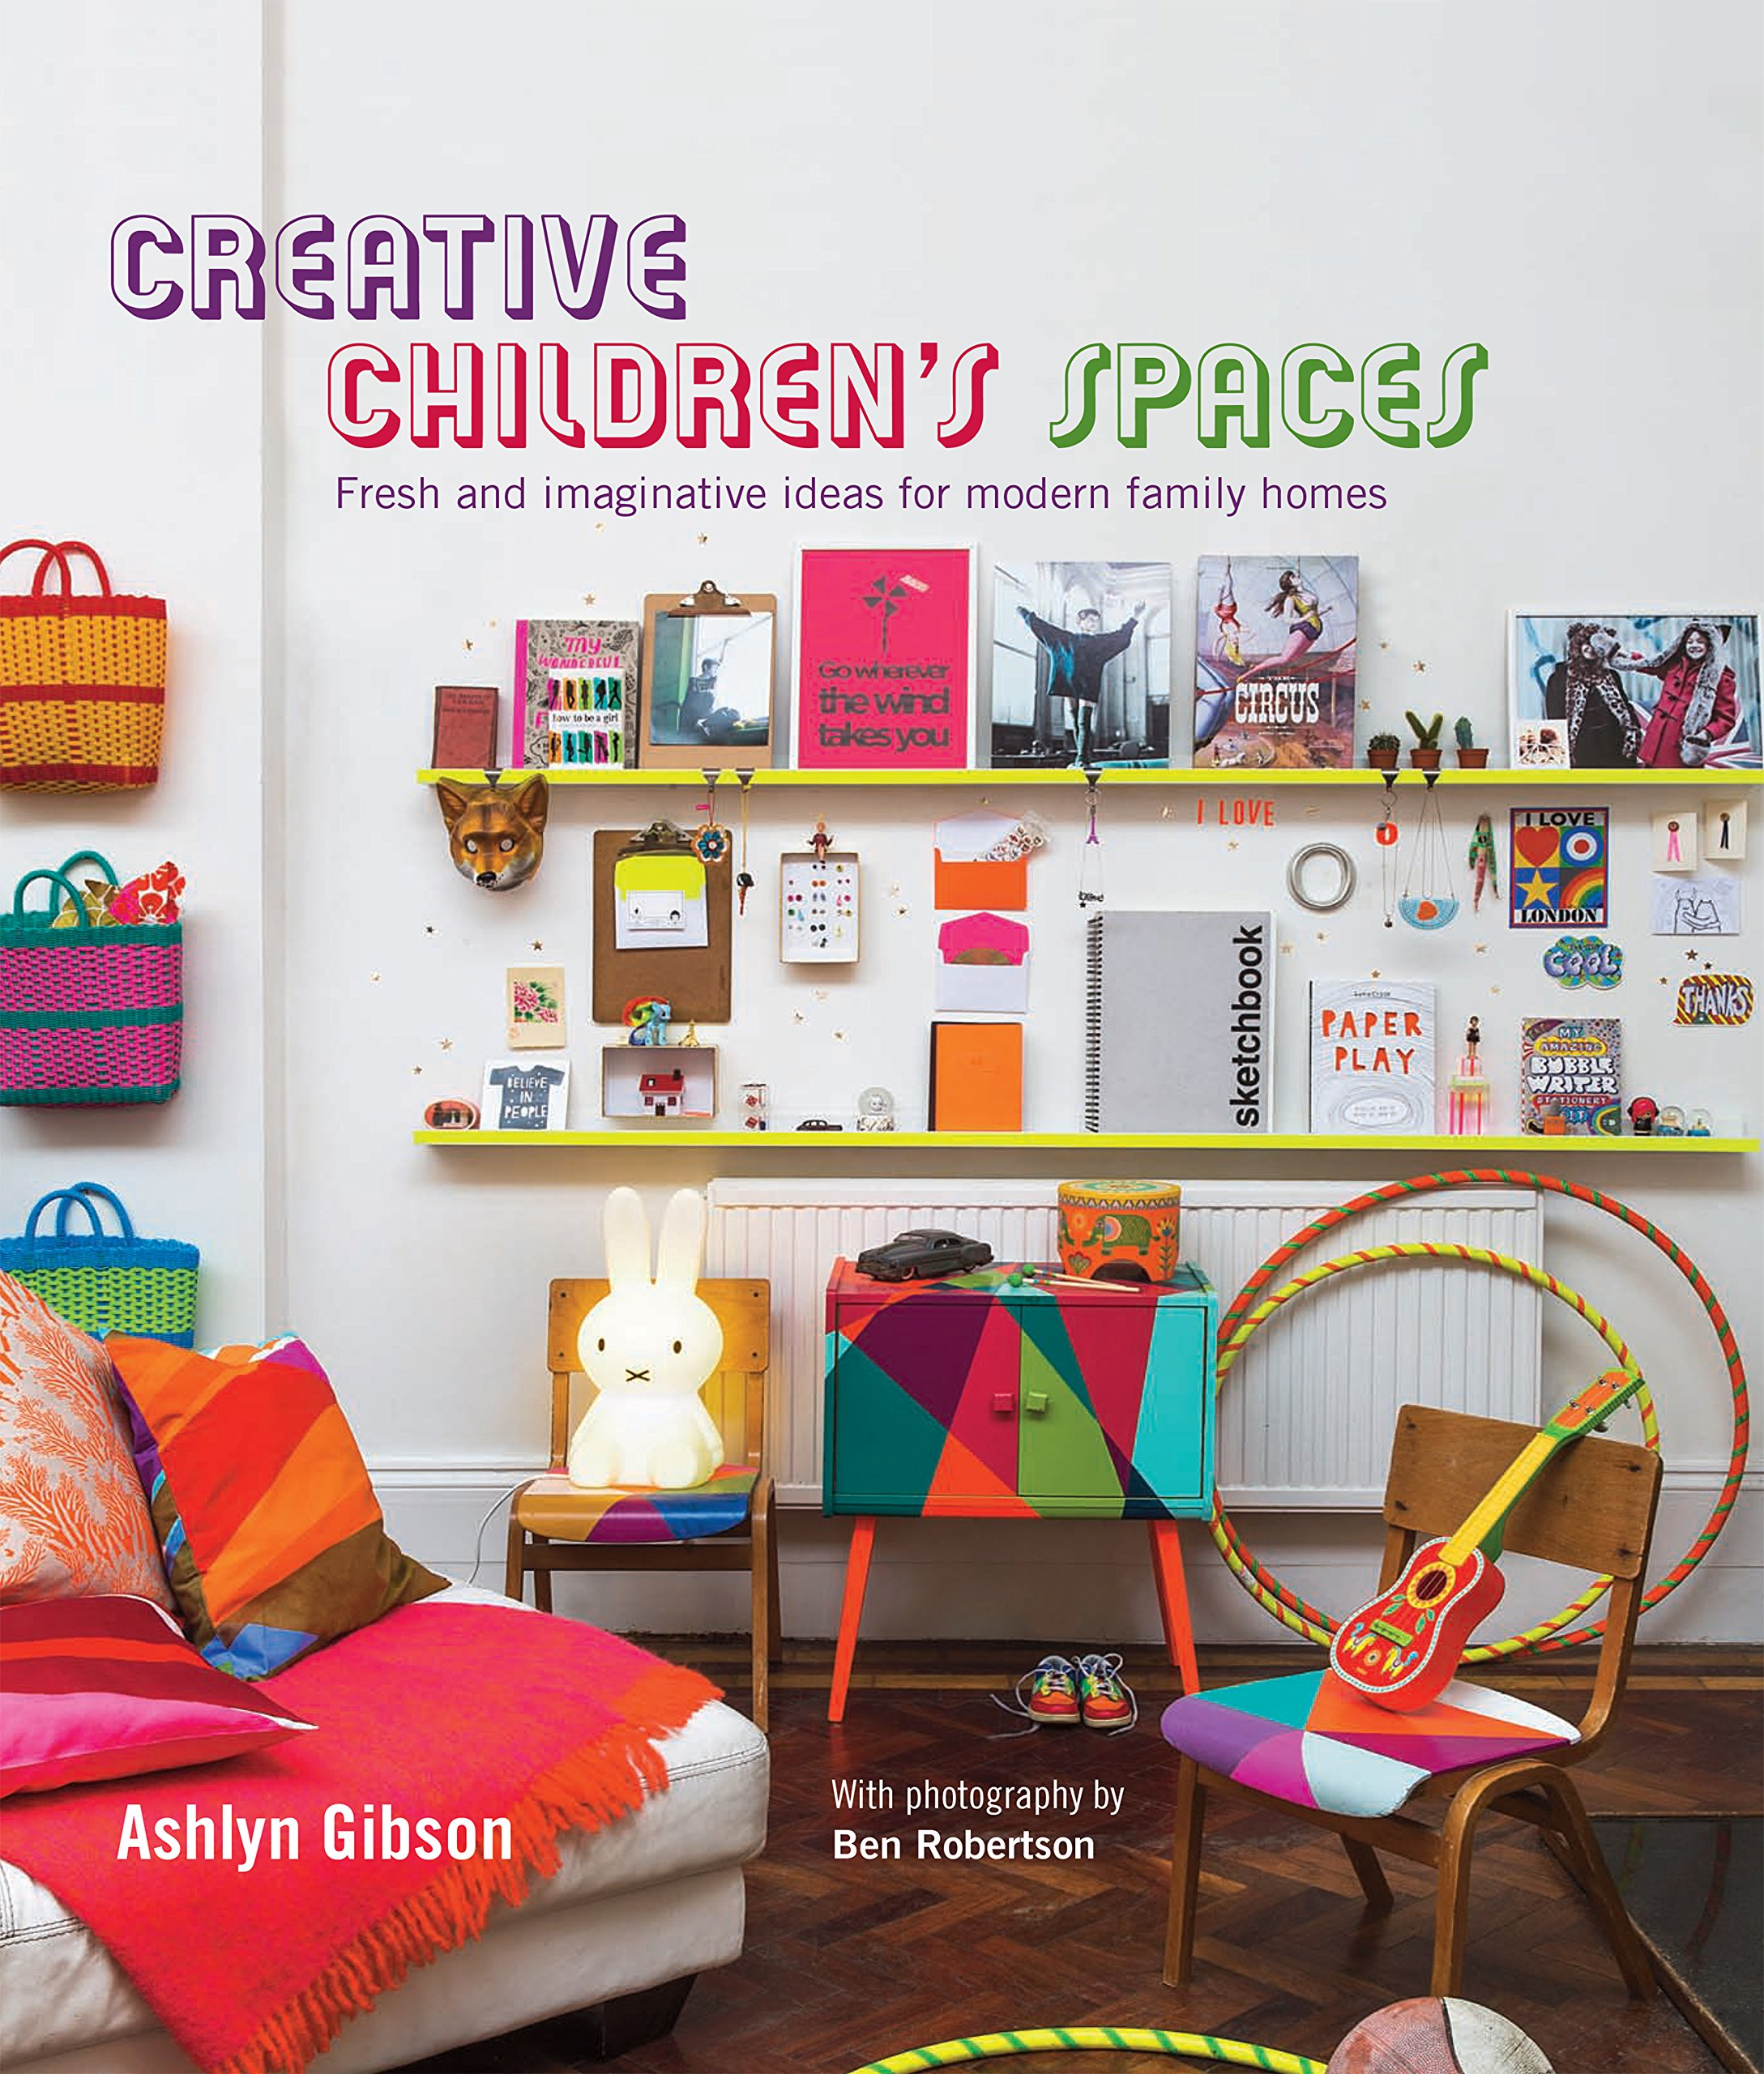 Download Creative Children's Spaces: Fresh and imaginative ideas for modern family homes PDF